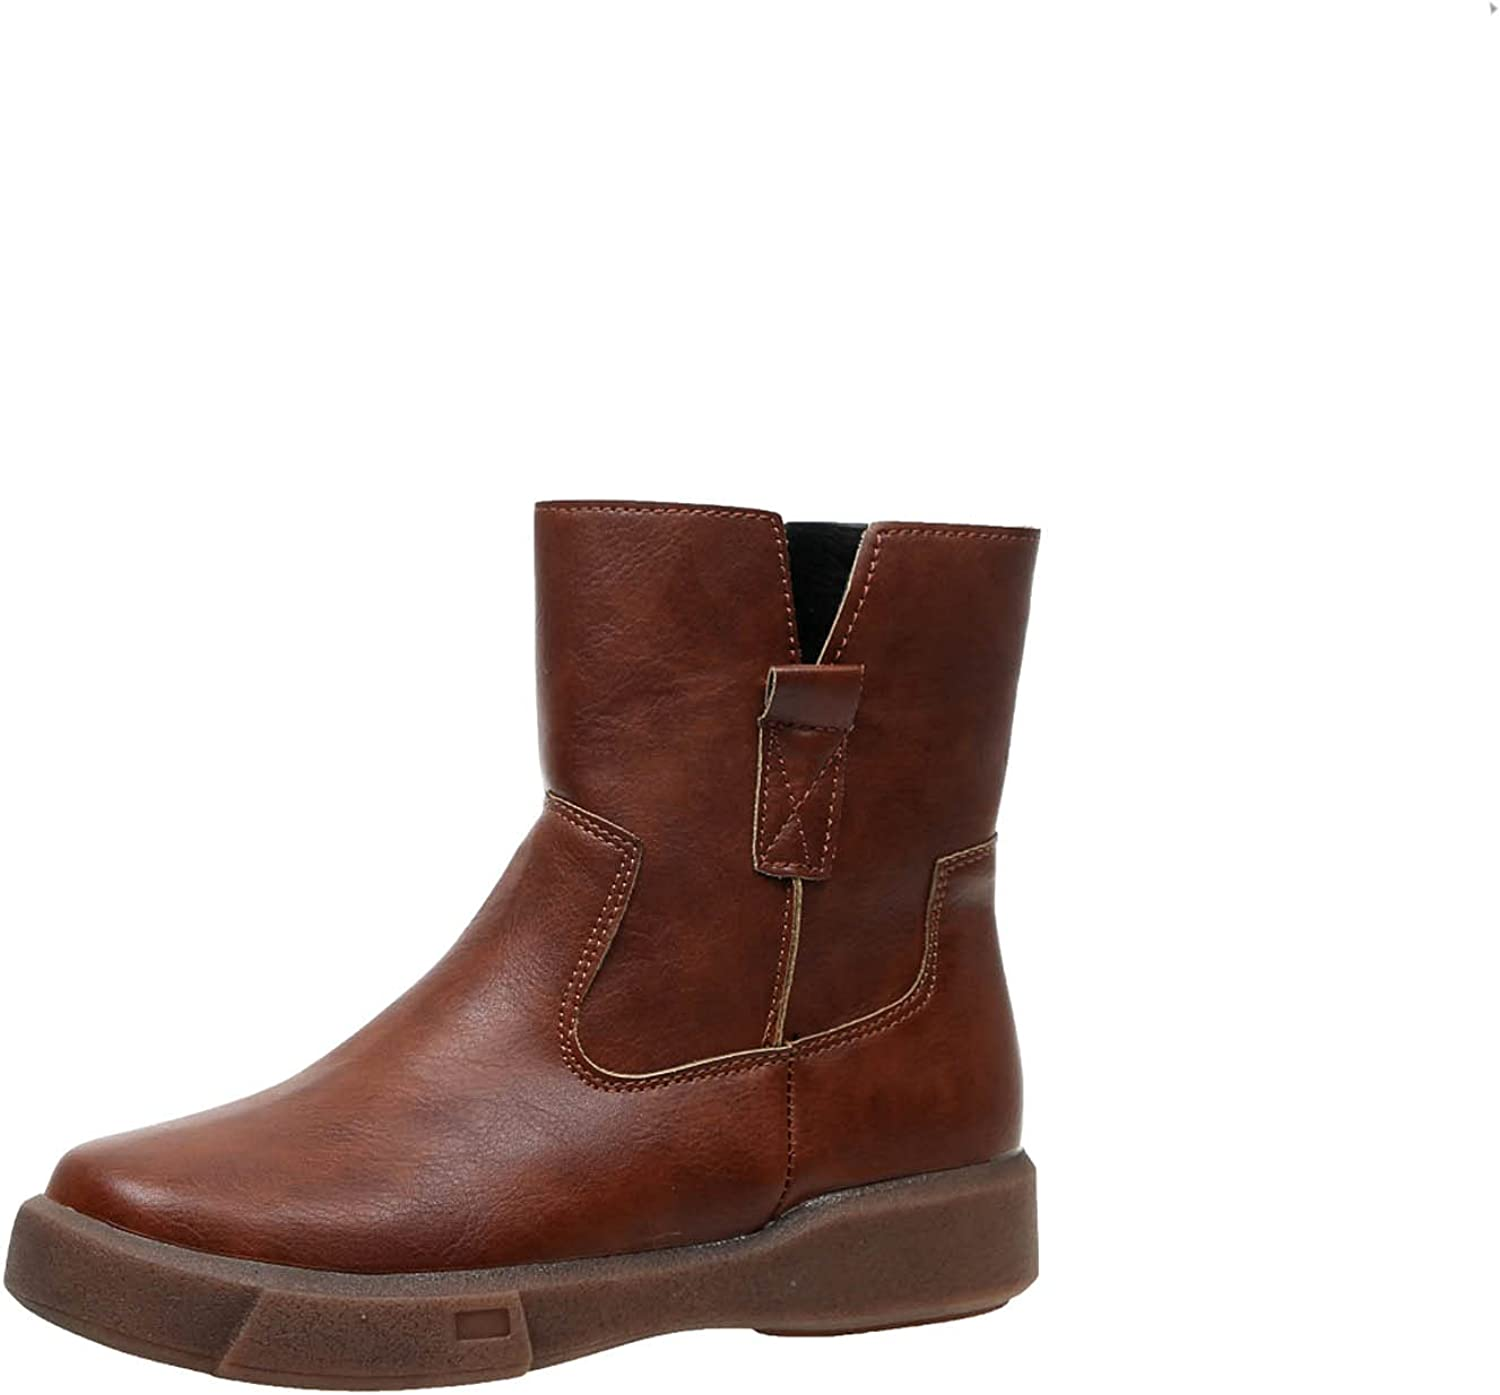 Women Dressy Vintage Boots Free shipping on posting reviews Slip-On Side Zipper Direct store Waterproof Autumn